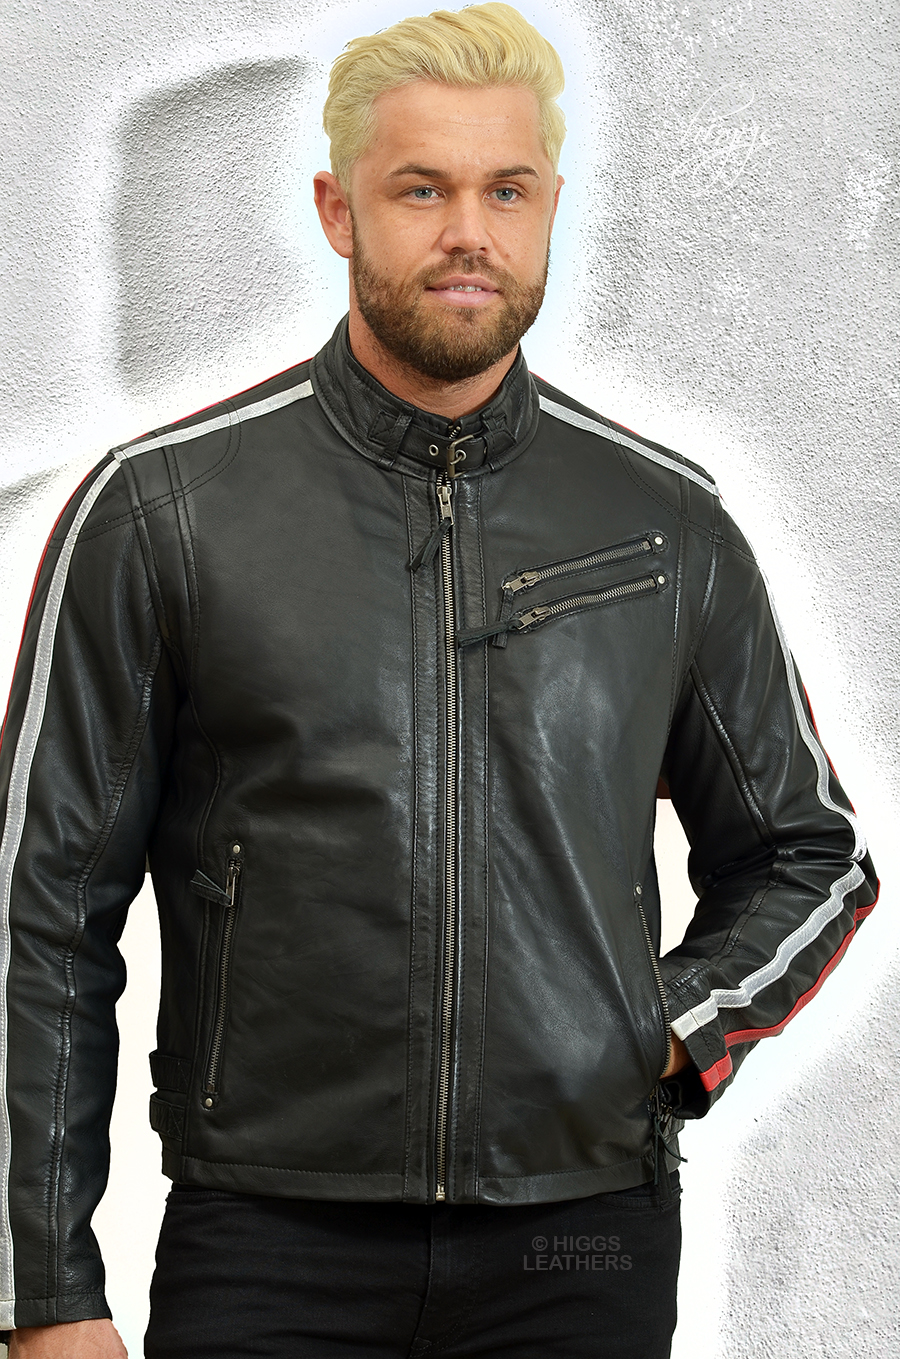 Higgs Leathers {ALL SOLD!}  Chip (men's striped Black Leather Biker jackets)